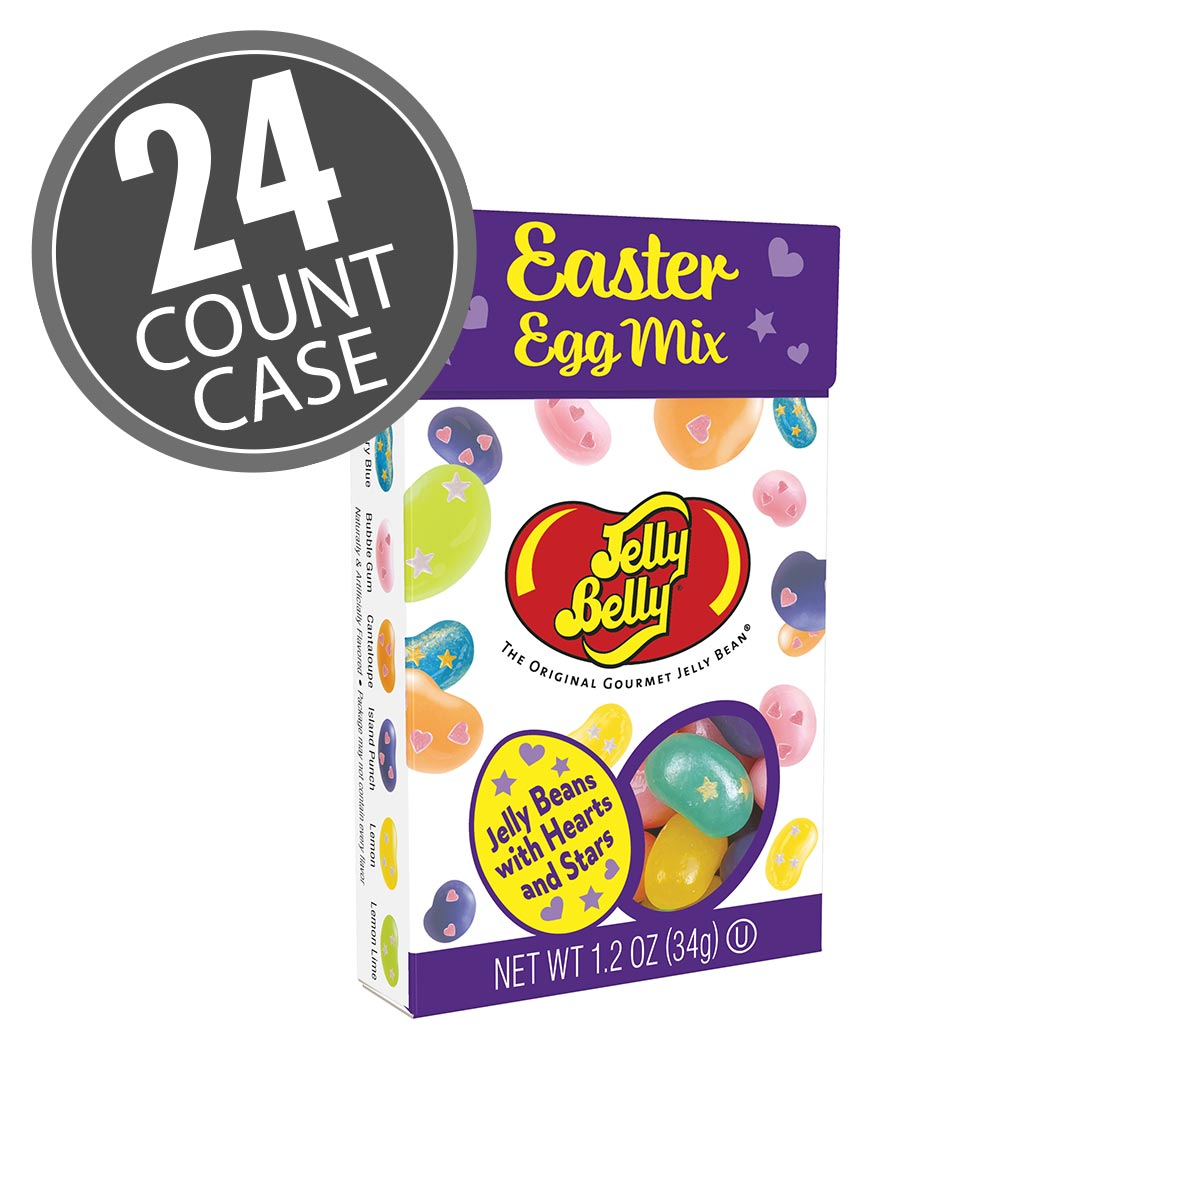 Jelly Belly Easter Egg Mix Flip Top Box, 1.2 oz - 24 Pack